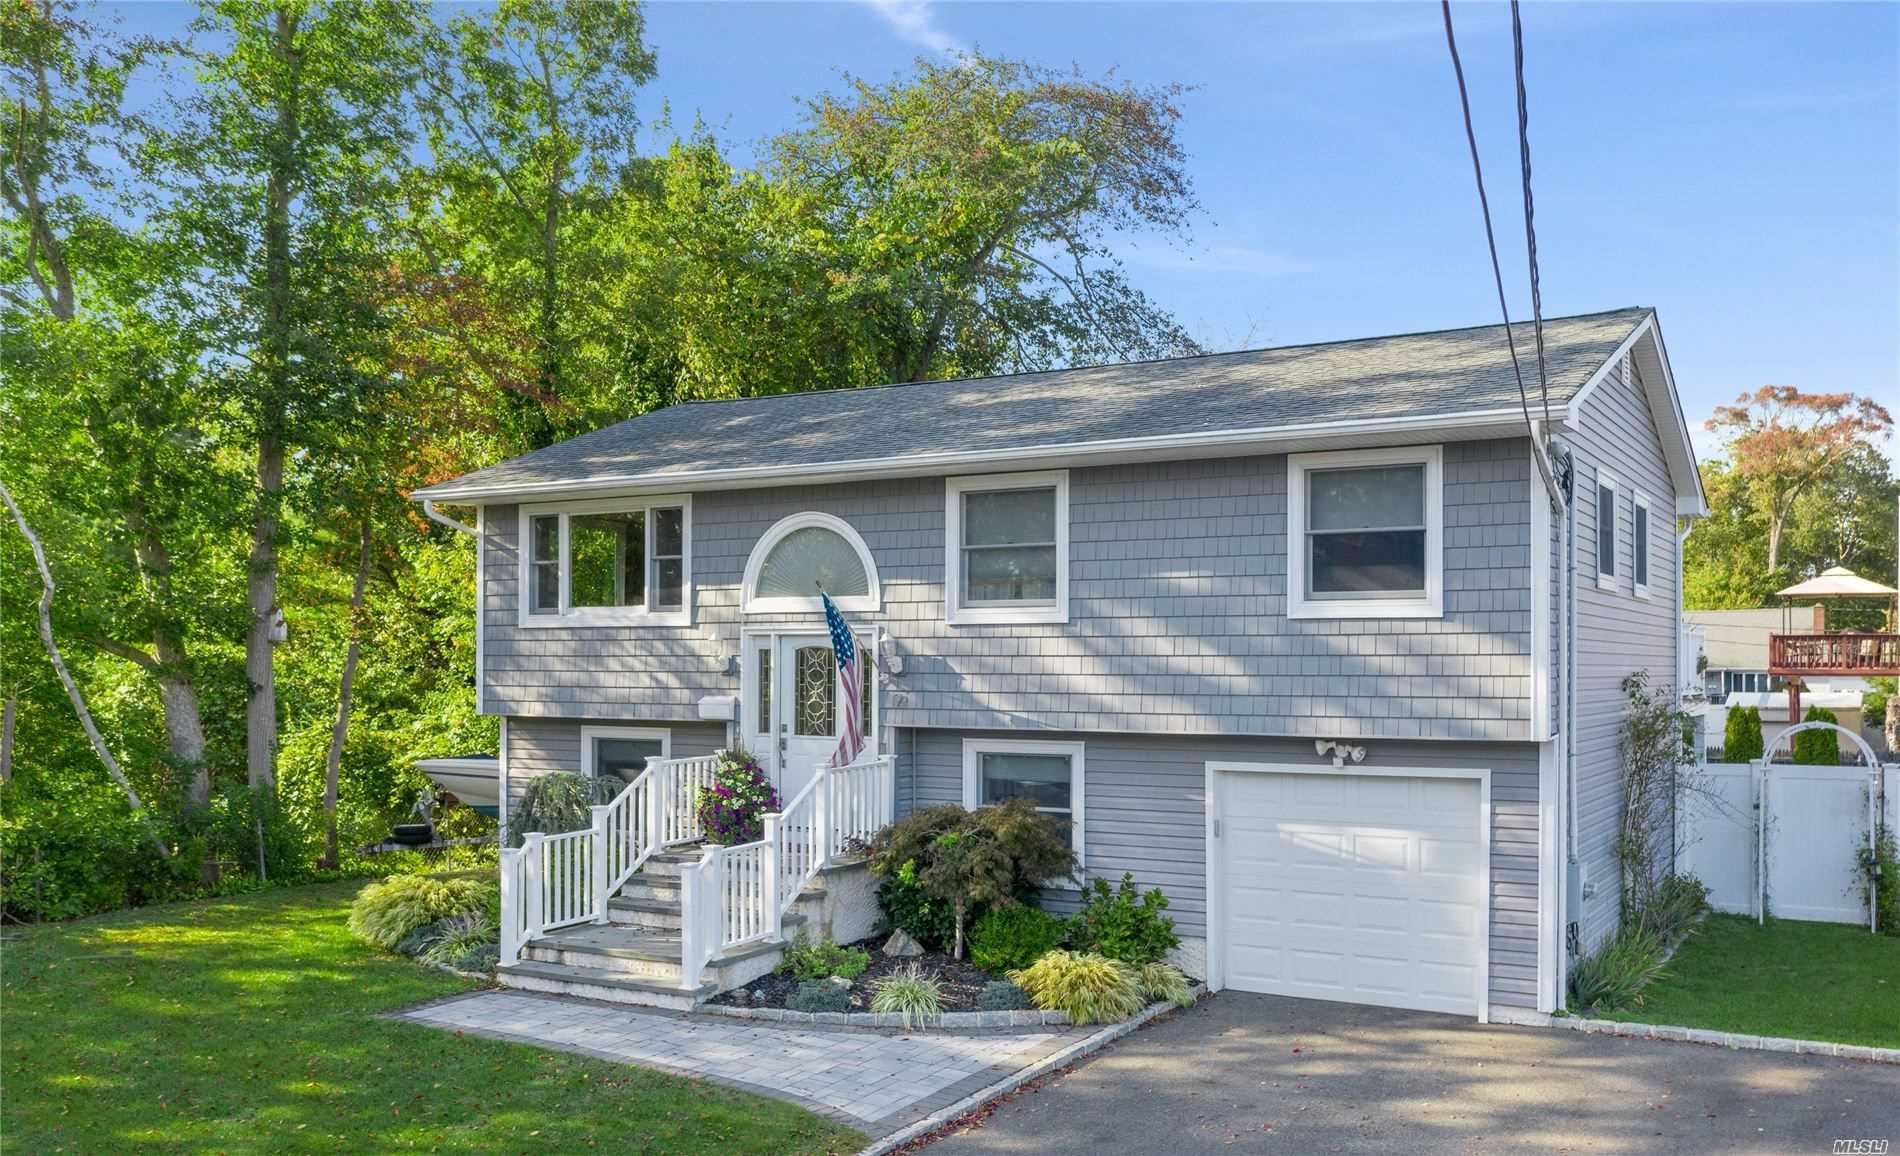 9 Skidmore Place, West Islip, NY 11795 - MLS#: 3182055